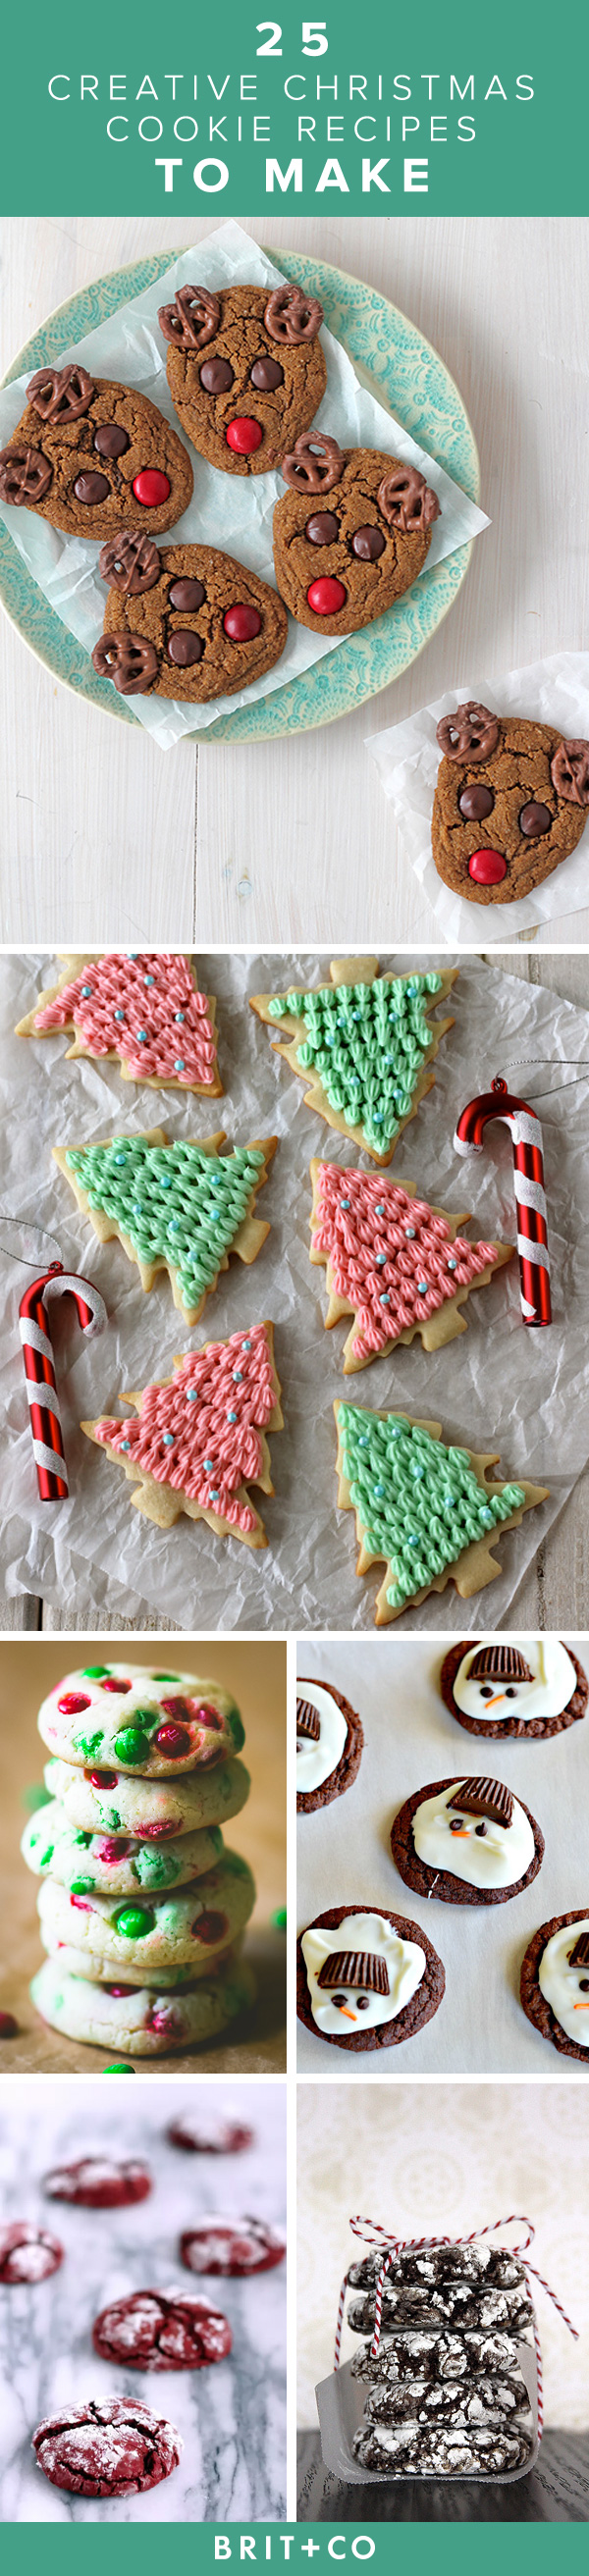 25 Creative Christmas Cookie Recipes Christmas cookies